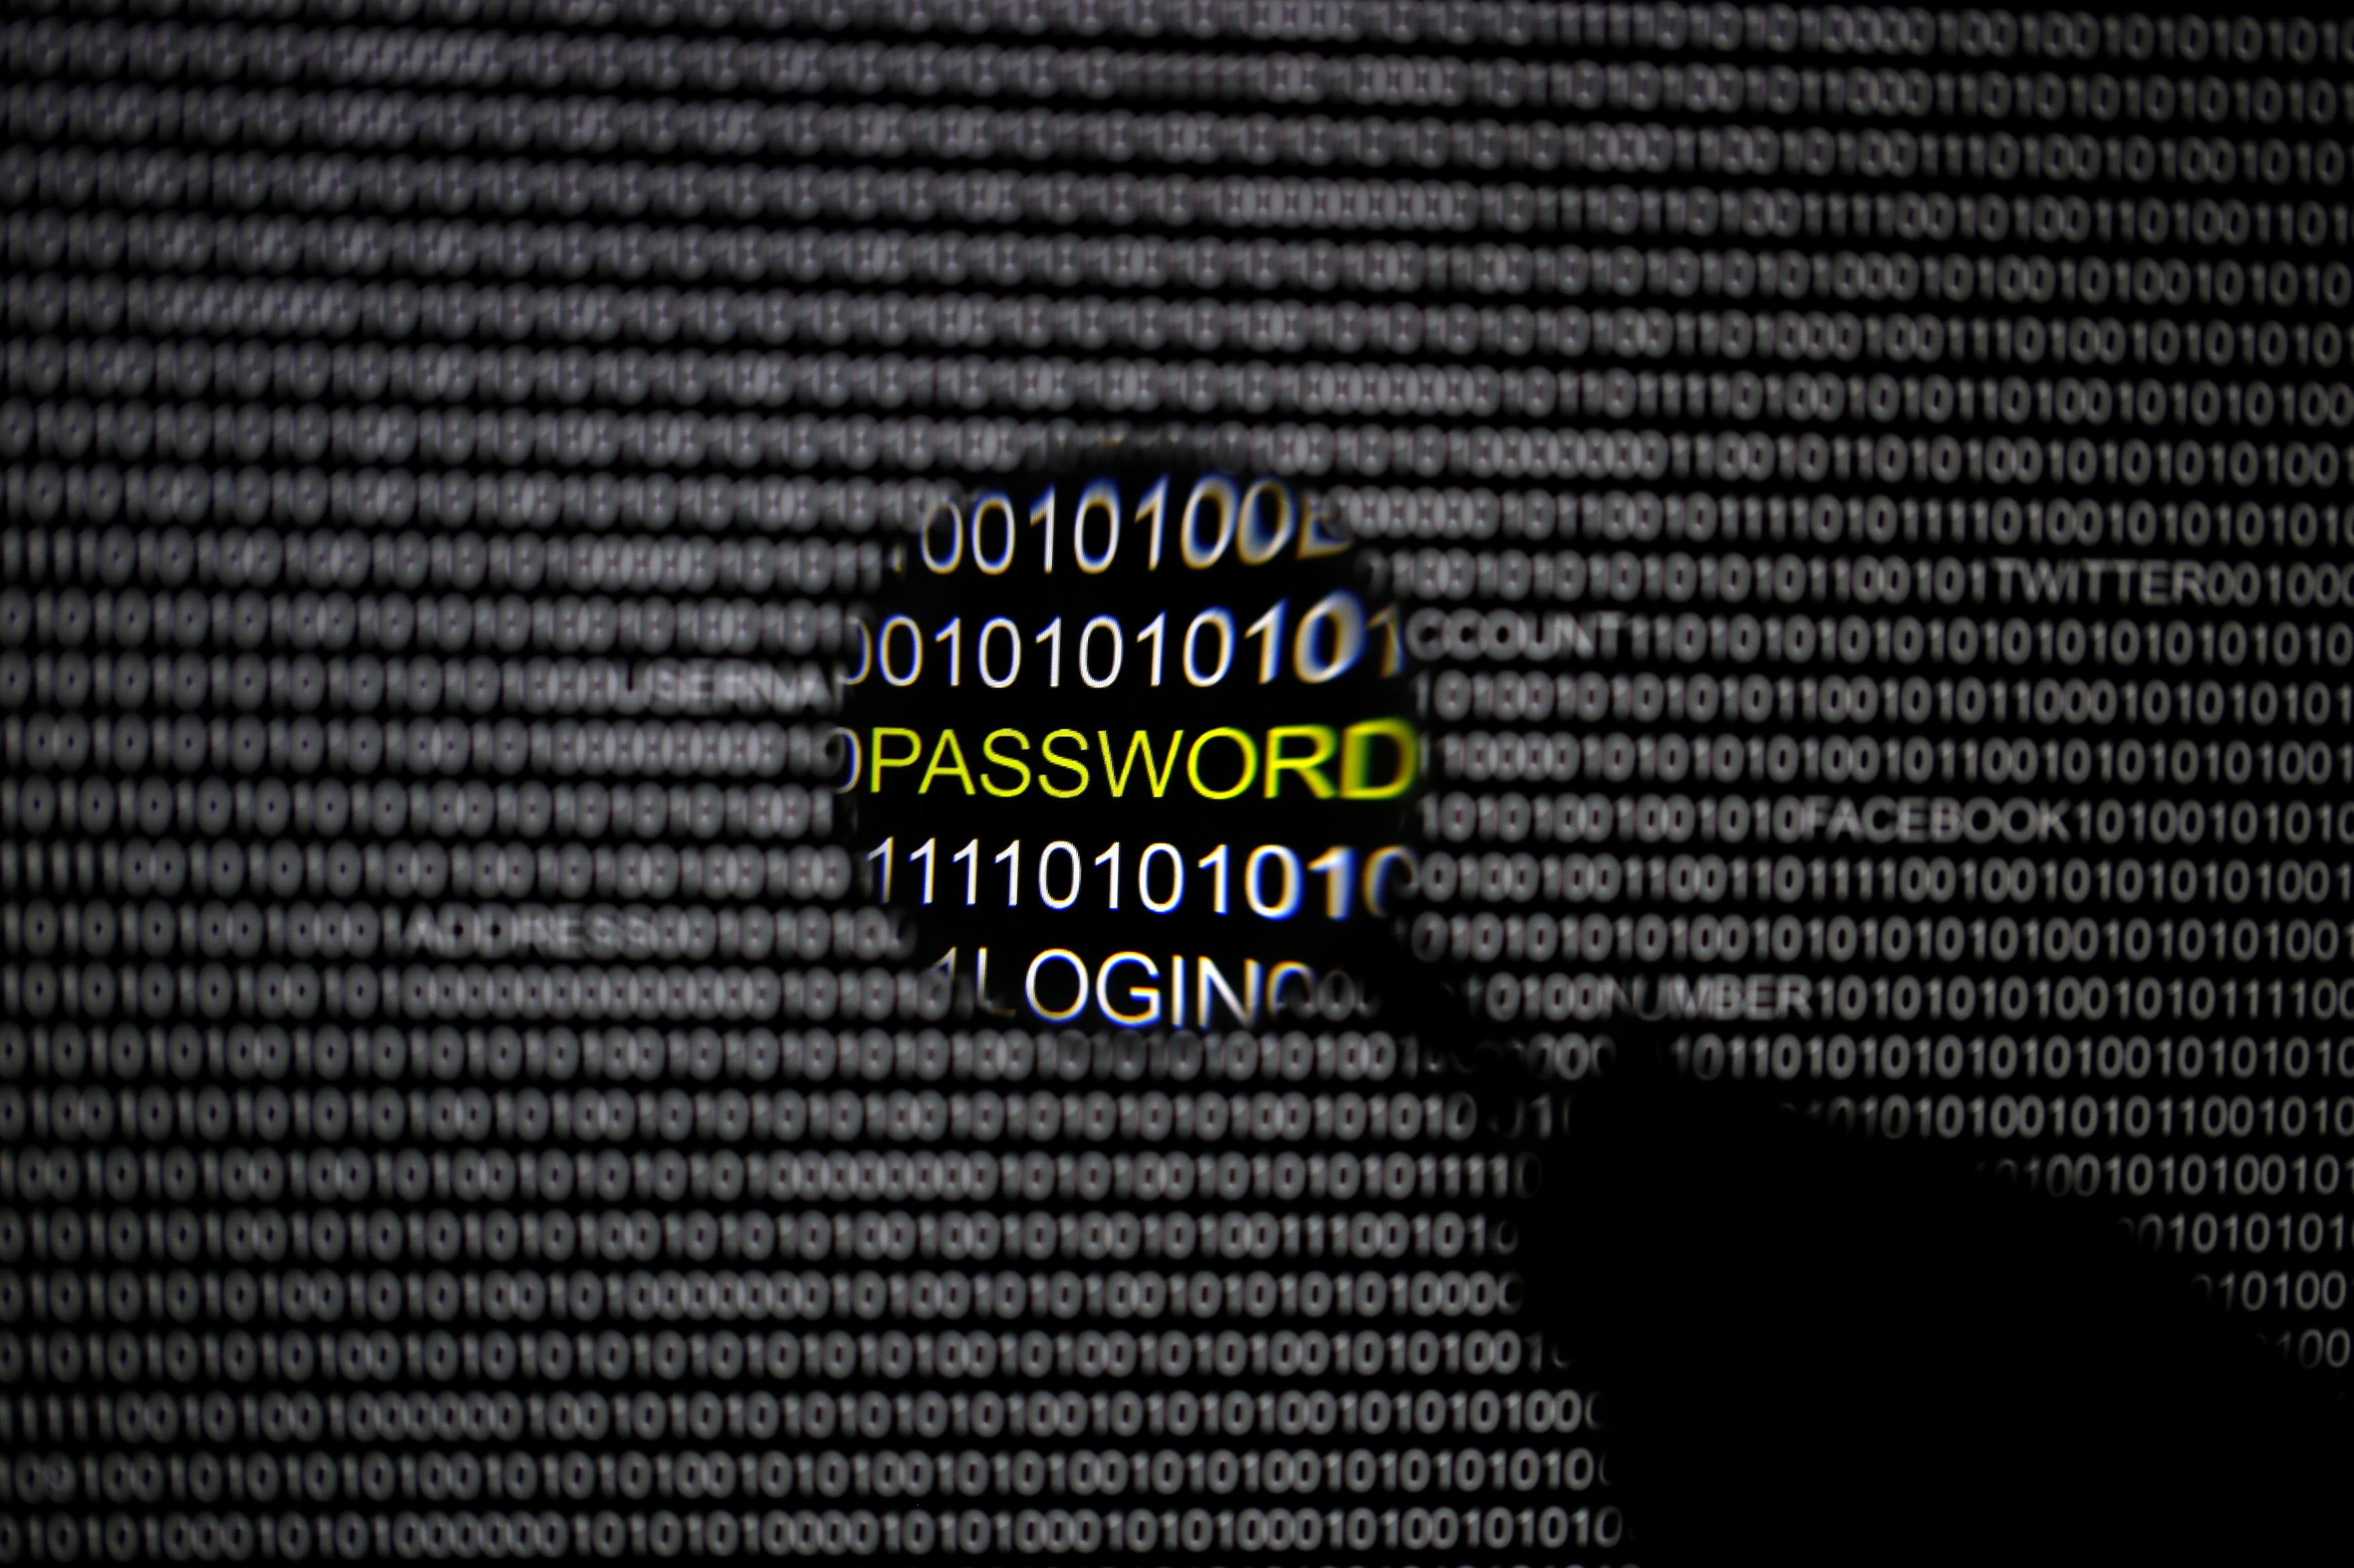 Russian Hackers Using Satellites to Hide Malware